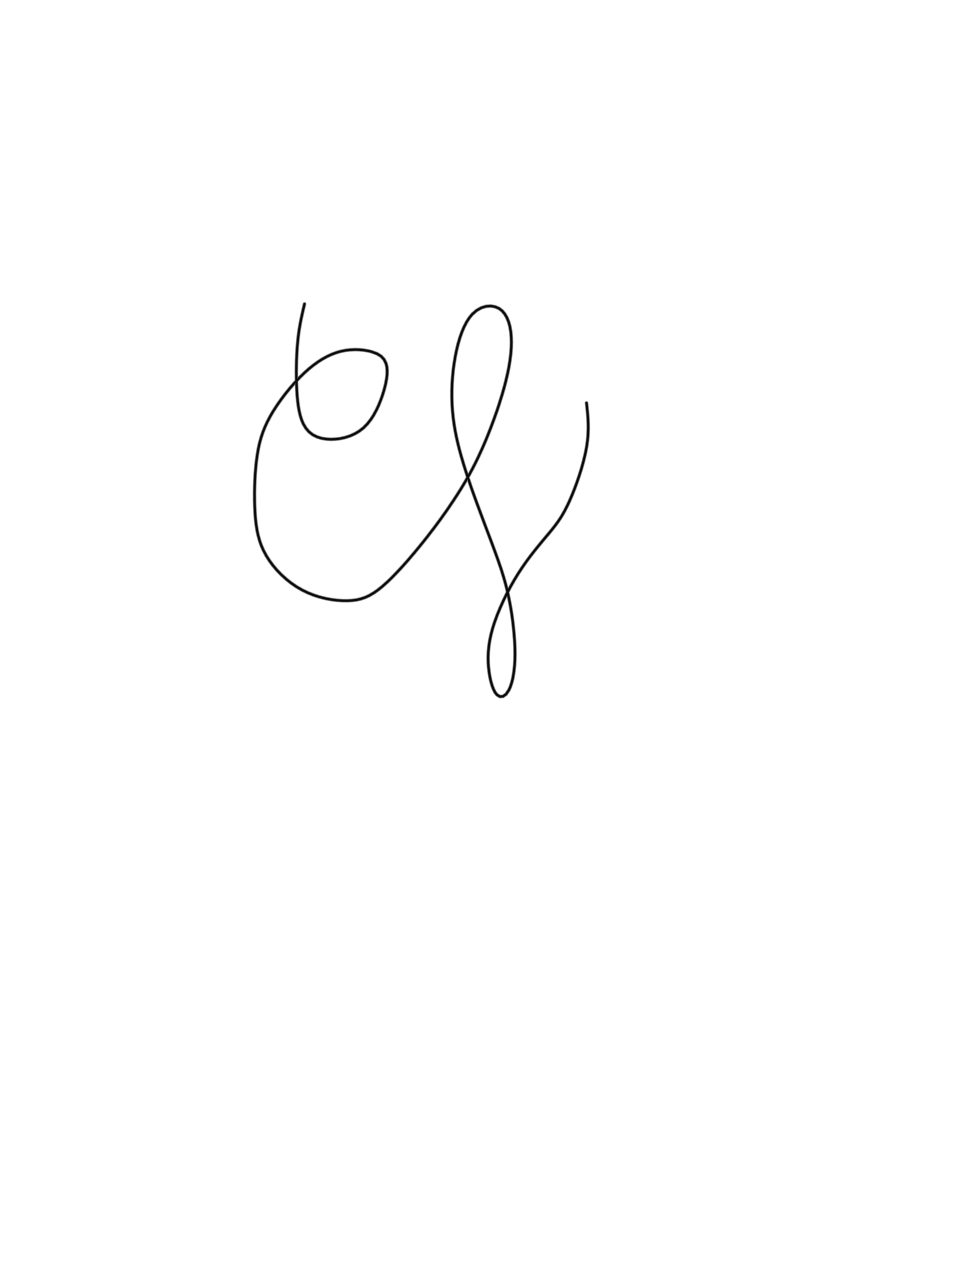 Catherine Fridey Signature